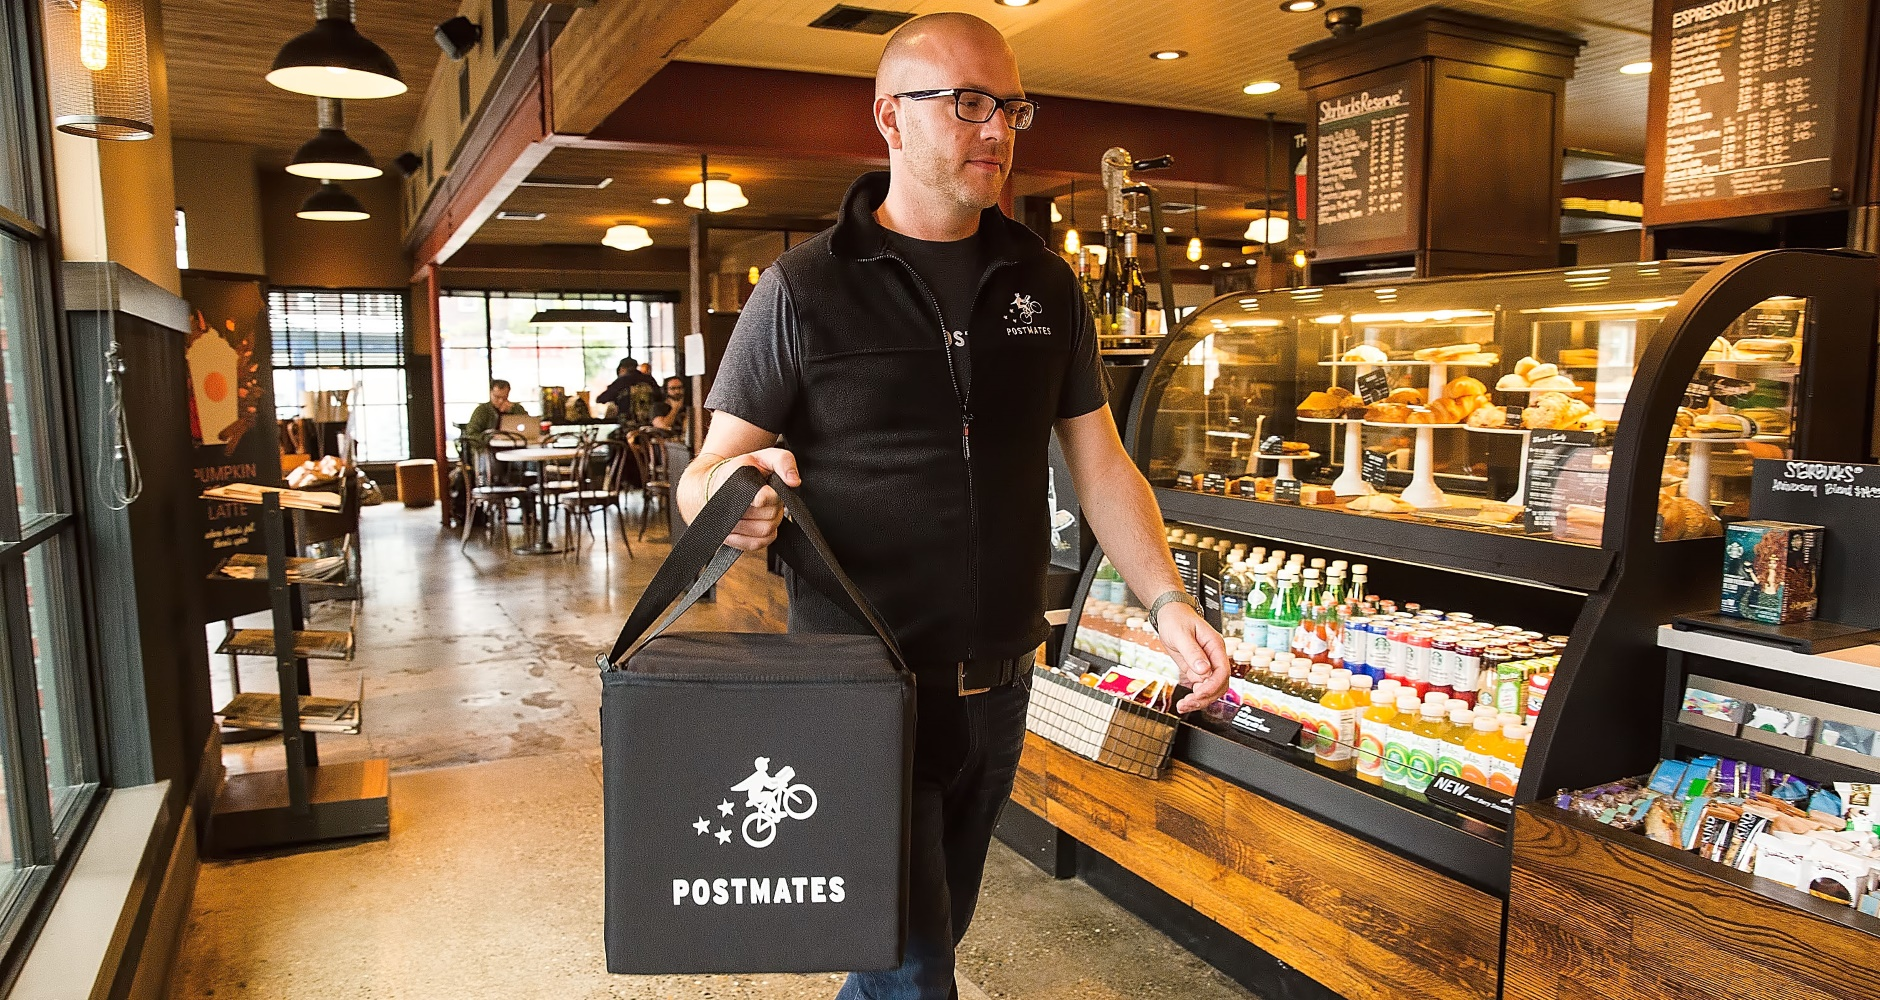 Starbucks Pilots Mobile Delivery with Postmates